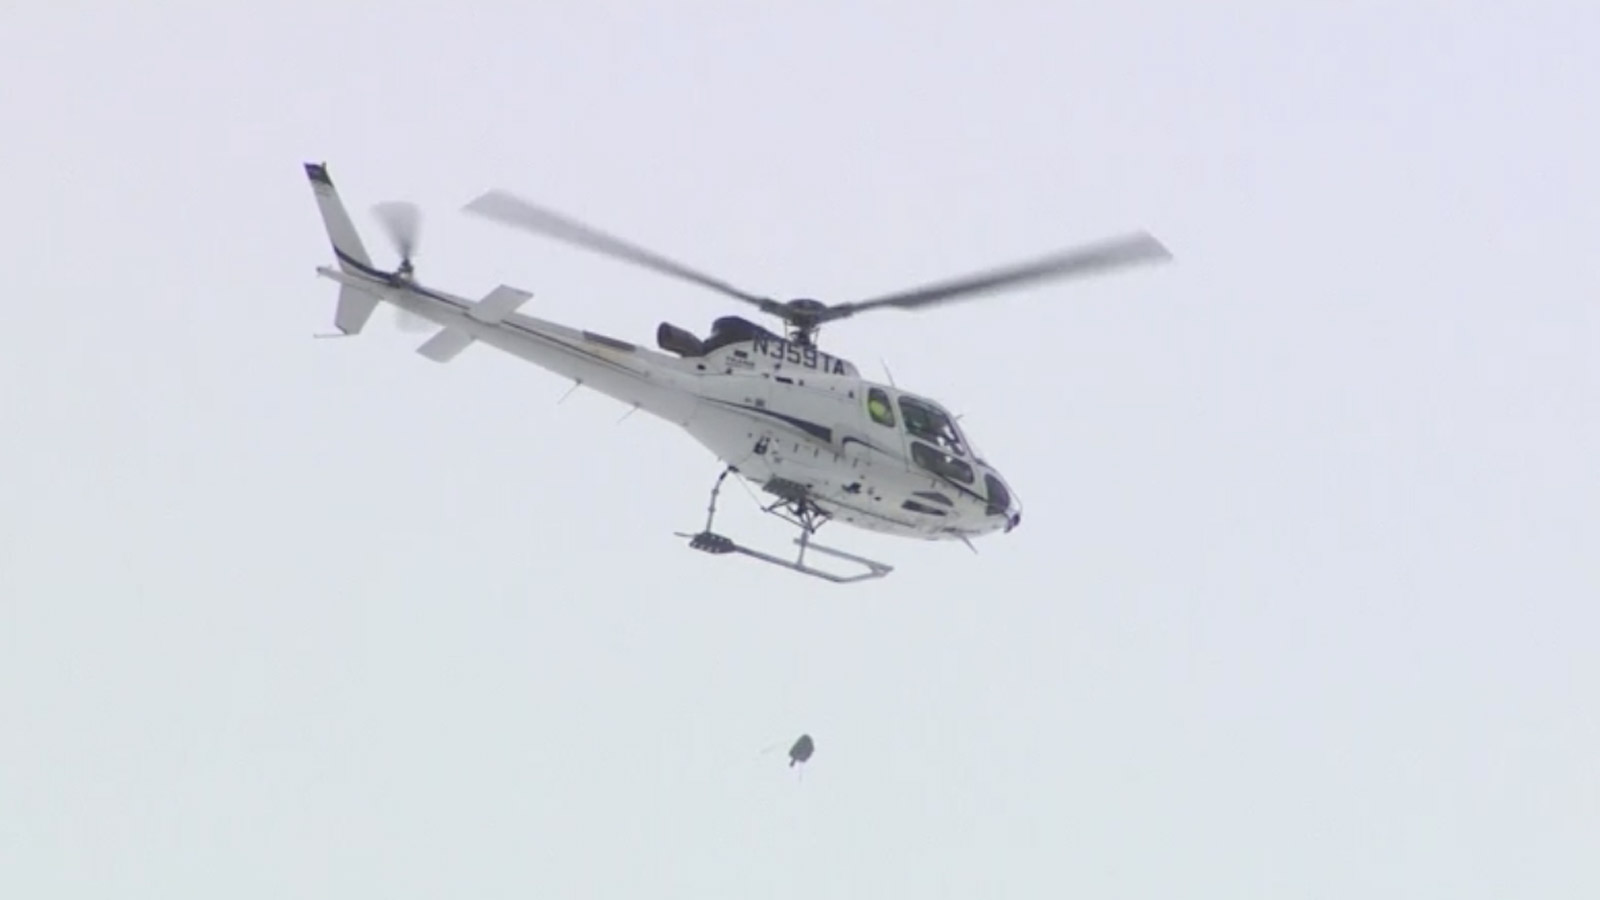 A helicopter drops a bomb on a snow slab on Independence Pass (credit: CBS)